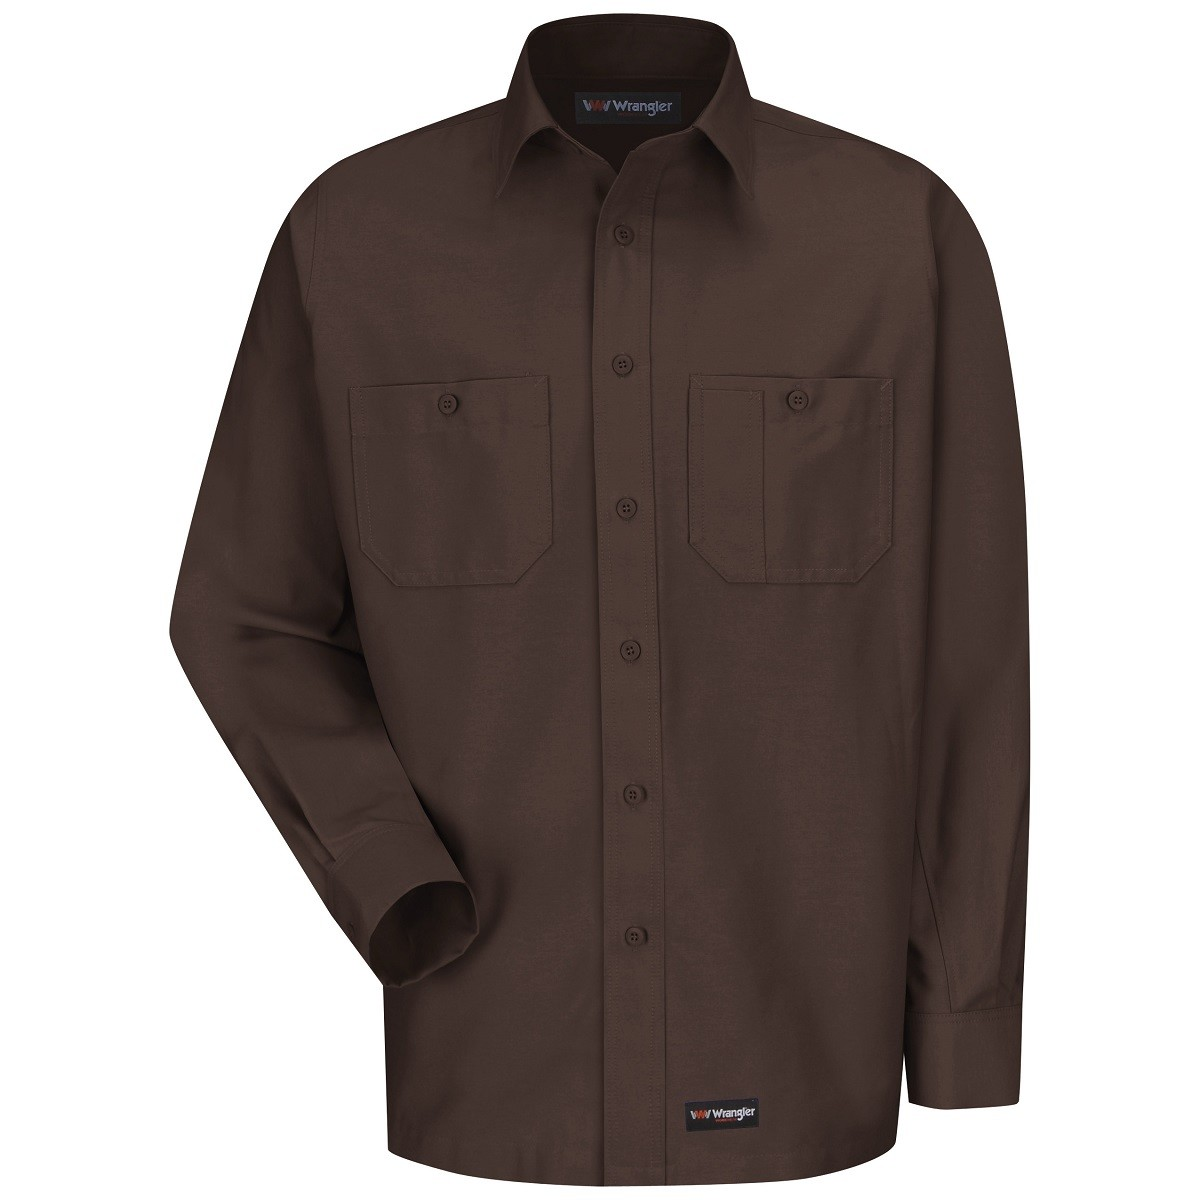 Wrangler ws10 men 39 s long sleeve work shirt chocolate for Mens chocolate brown shirt